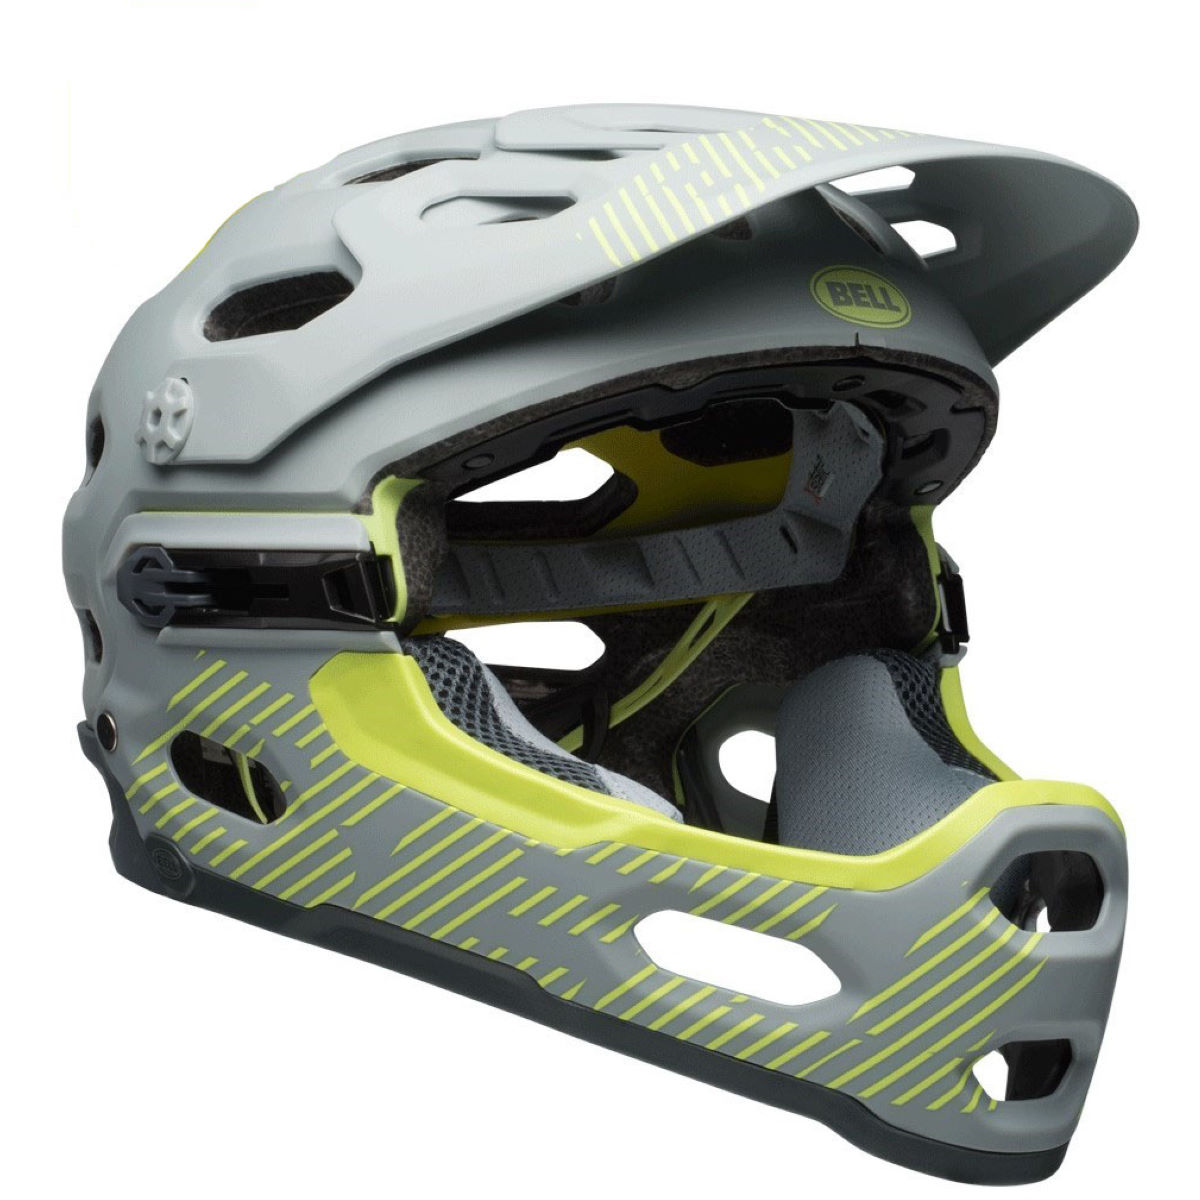 Casque Bell Super 3R MIPS - S Matte Smoke/Pear Casques intégraux